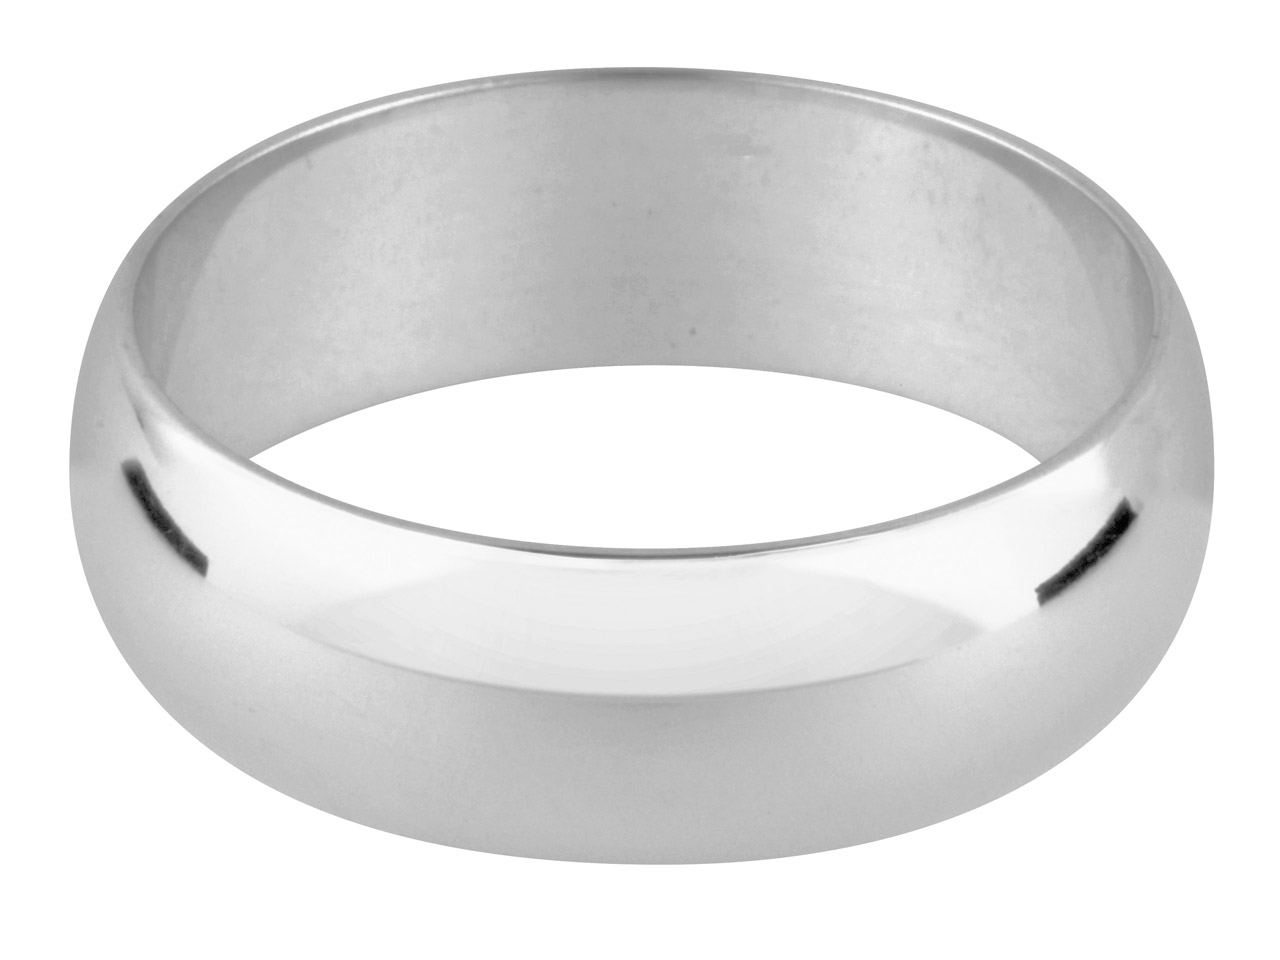 Platinum D Shape Wedding Ring 2.0mm O 3.1gms Heavy Weight Hallmarked    Wall Thickness 1.28mm